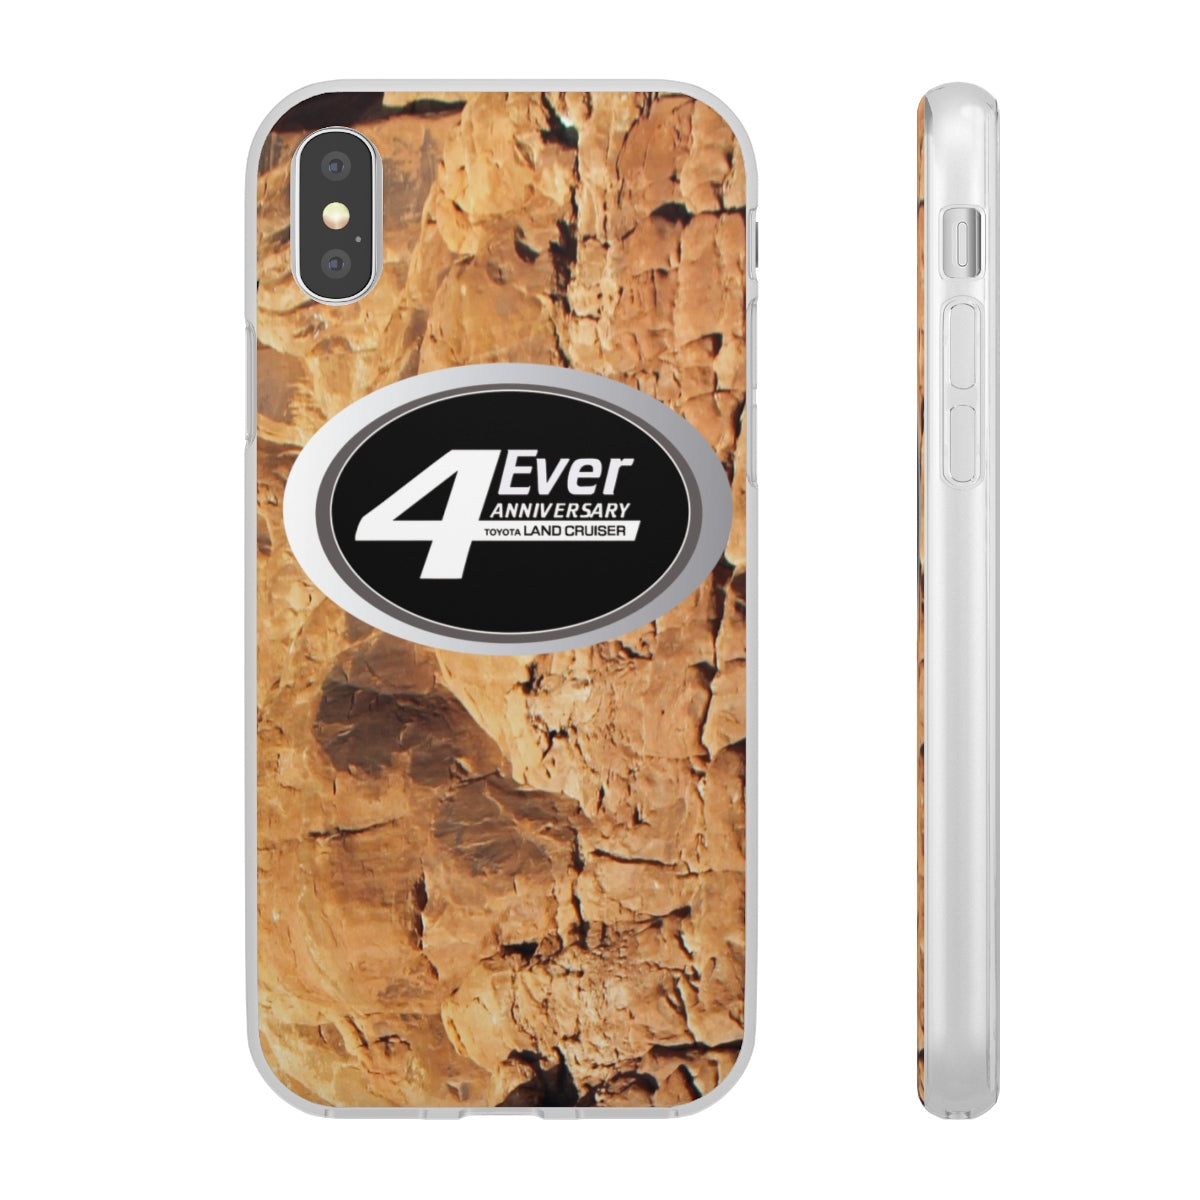 4EverAnniversaryTLC Rock Phone Cover - by Reefmonkey @4everanniversarytlc